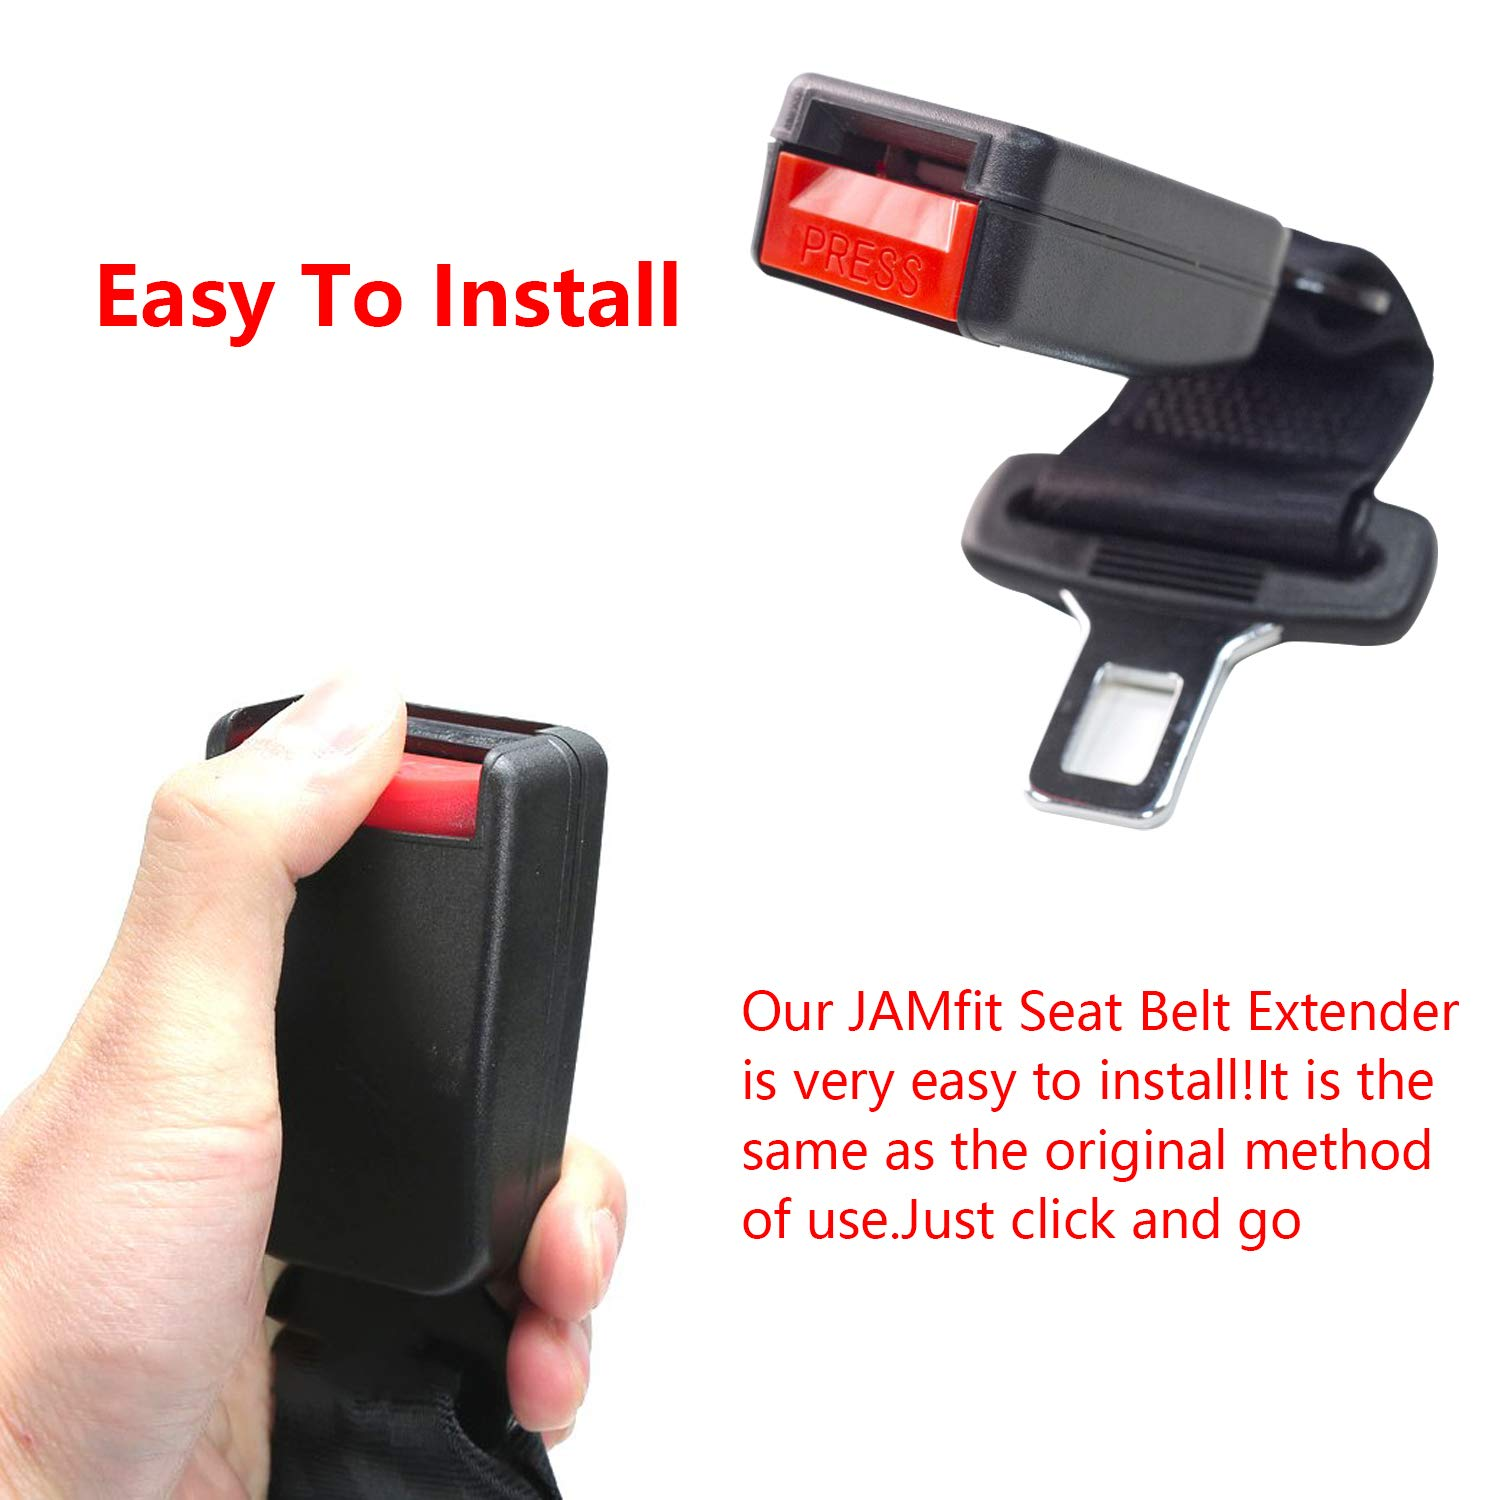 Seat Belt Extender-JAMfit Seat Belt Buckle Extension 3 Packs Black Red for Most Cars Automotive Interior Safety 7//8 Metal Tongue E11 Safety Certified Seat Belt Extension